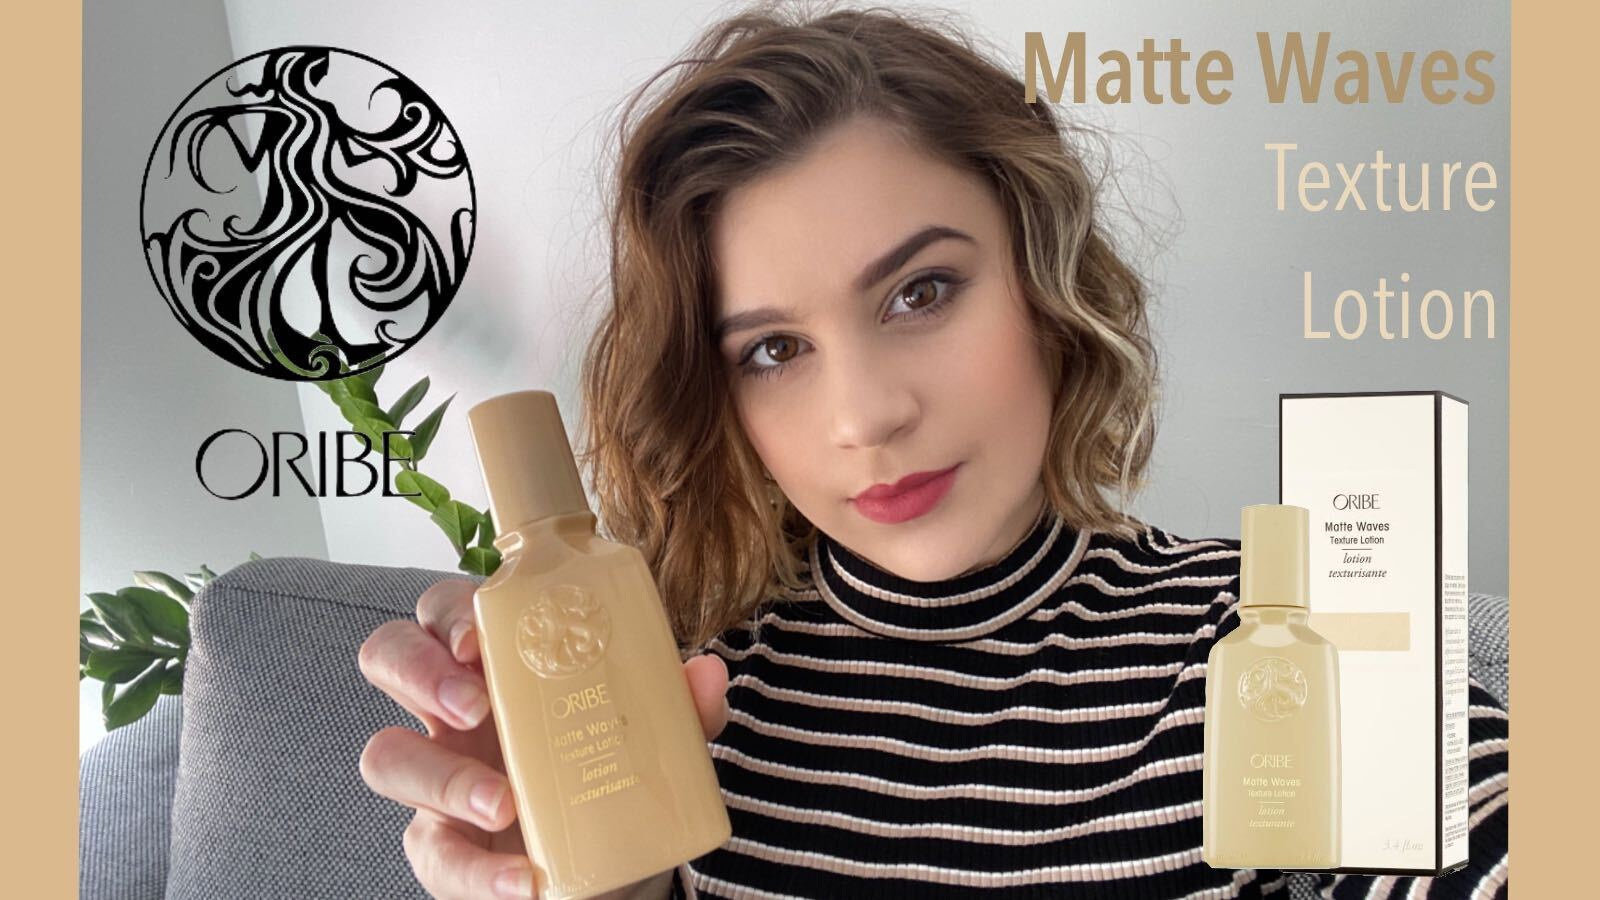 Matte Waves Texture Lotion | Oribe